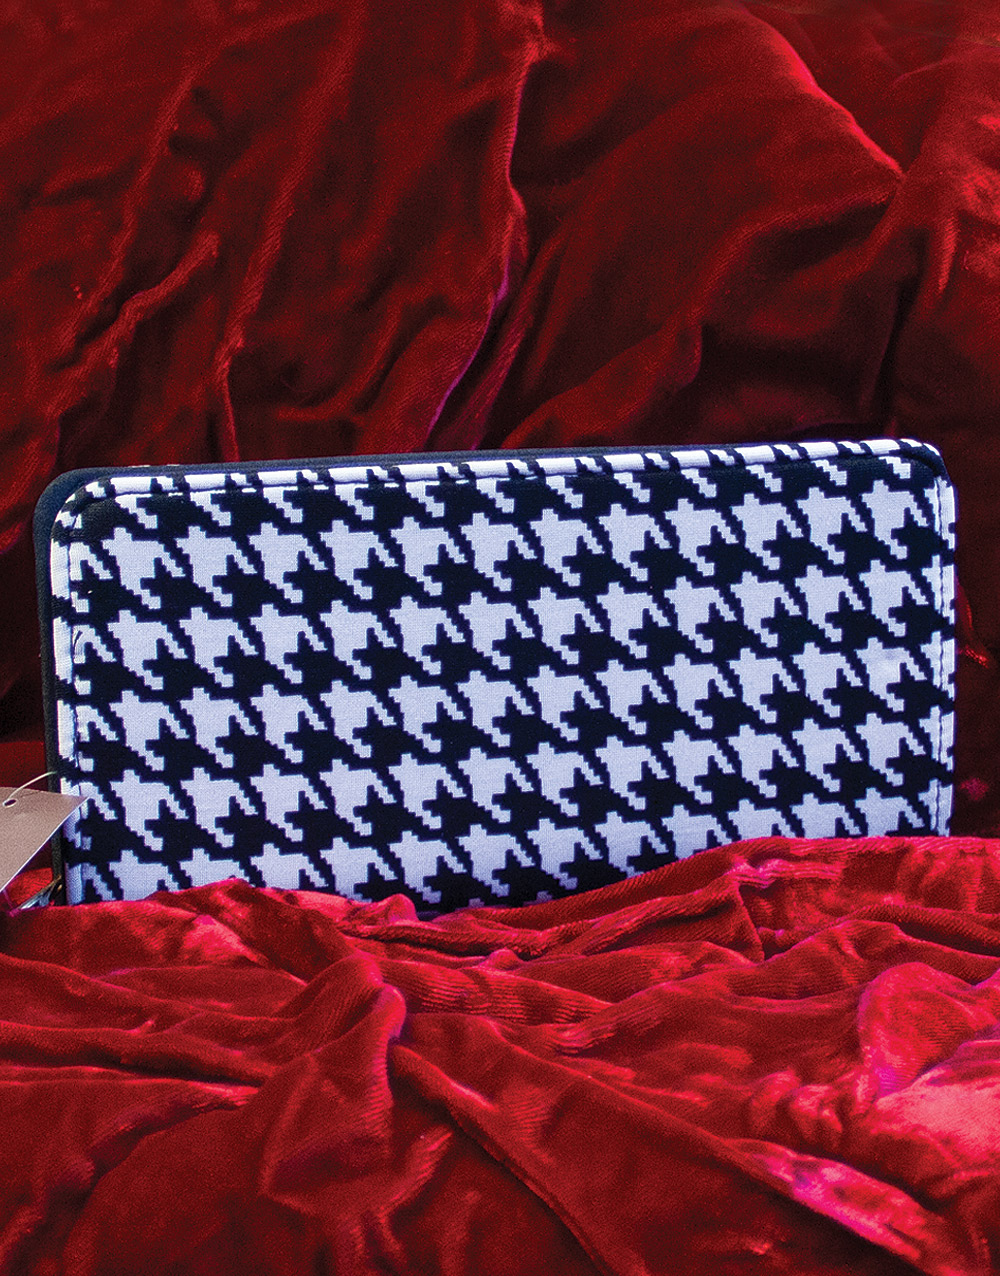 Black & White Houndstooth Nupouch Wallet